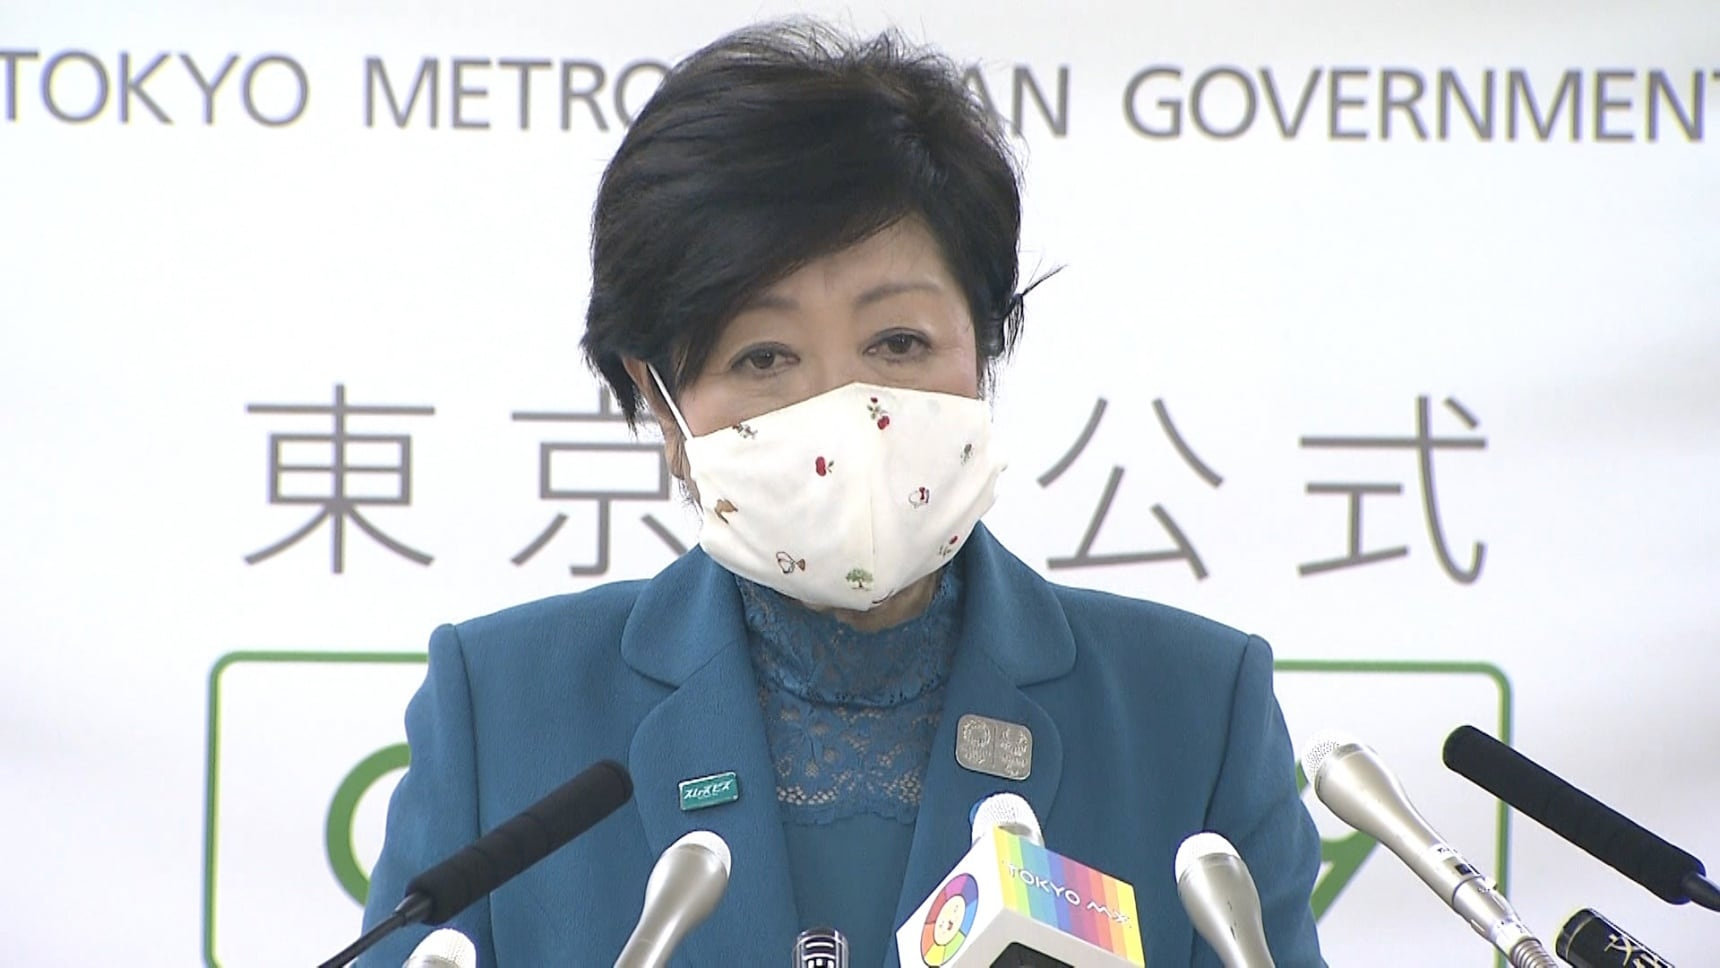 Tokyo Governor Steps Up Stay Home Request